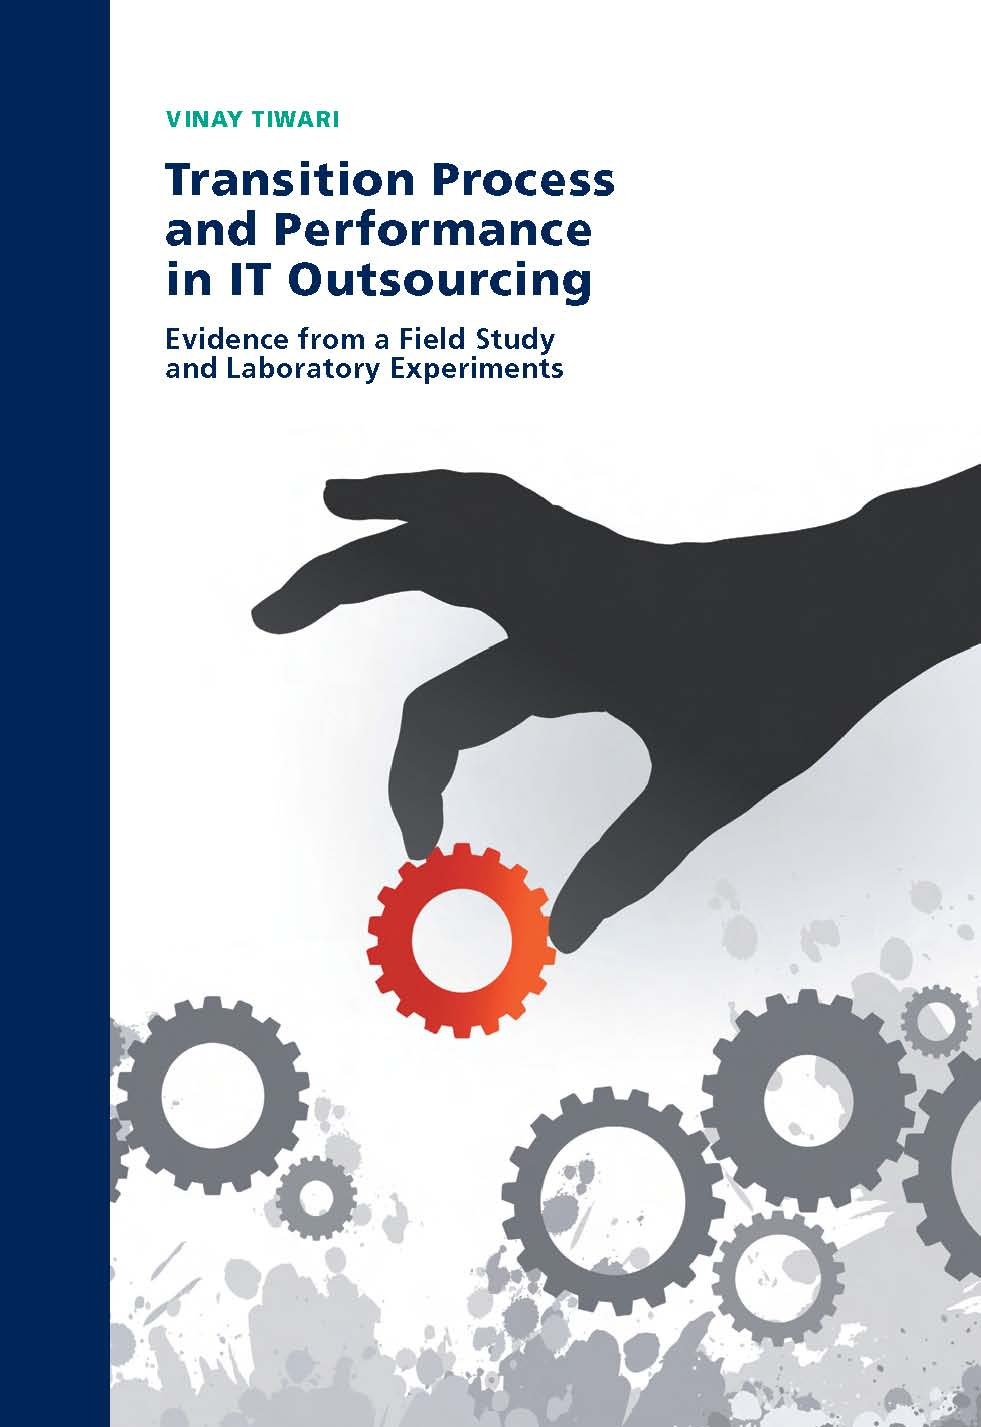 Transition Process and Performance in IT Outsourcing: Evidence from a Field Study and Laboratory Experiments